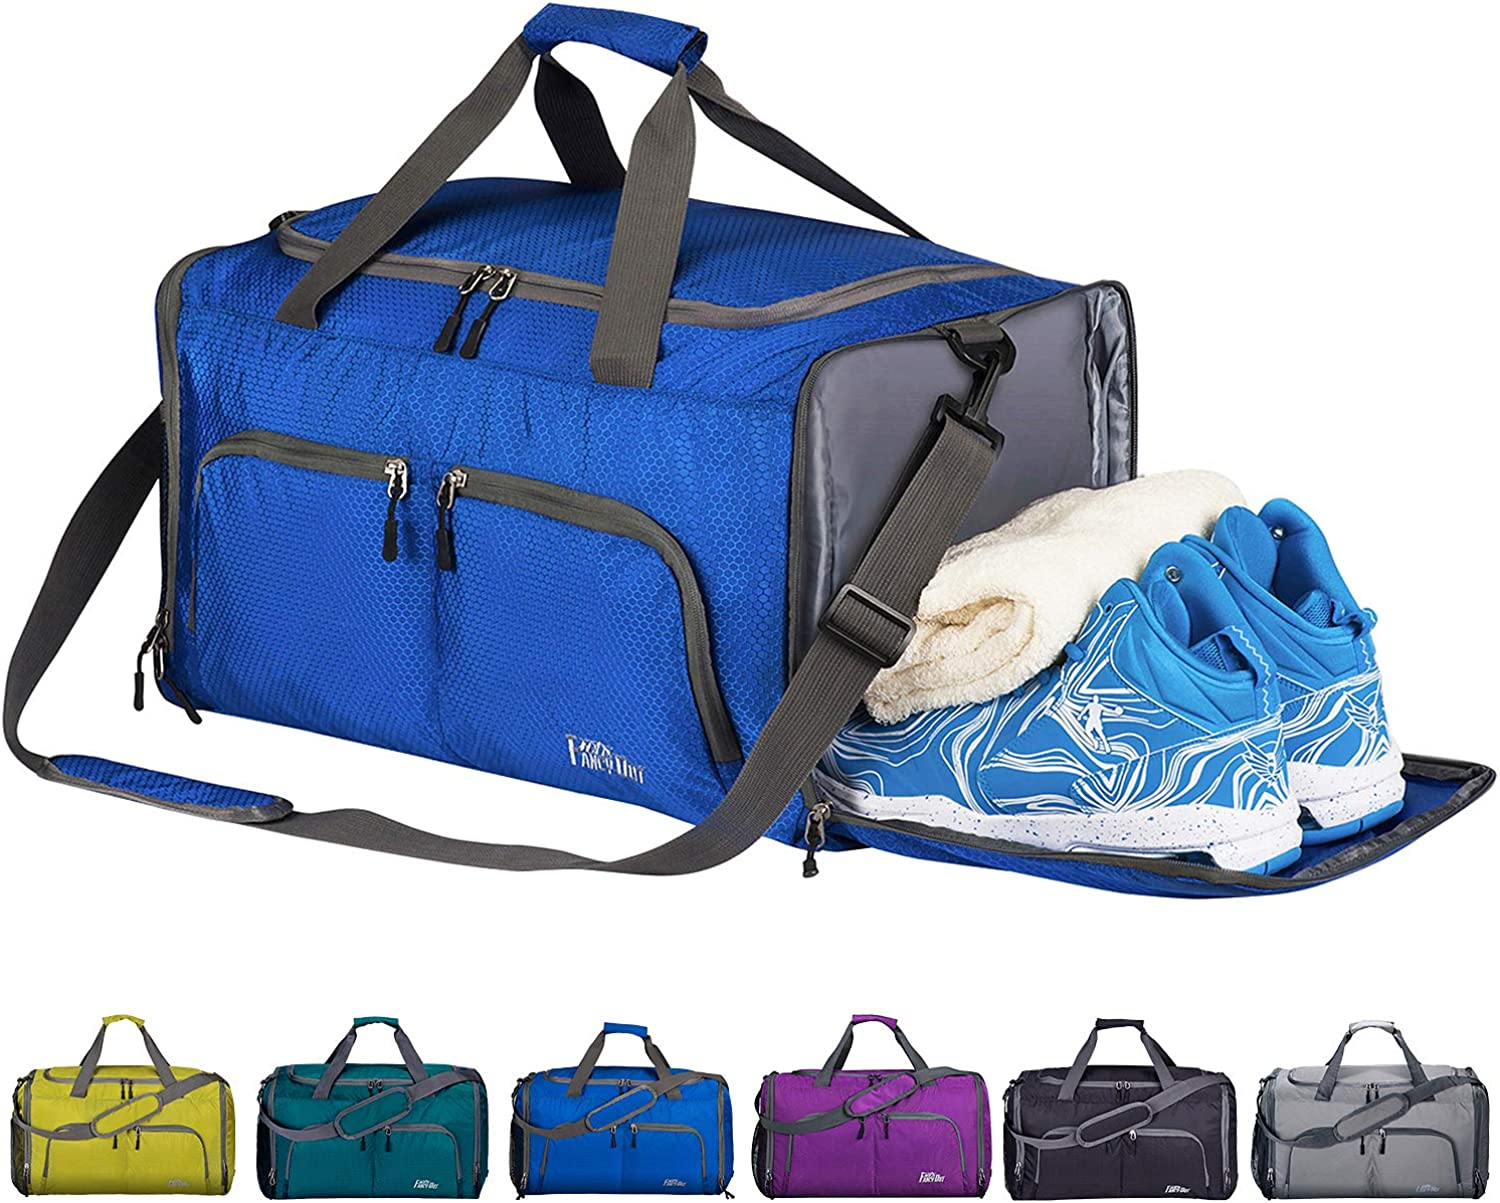 FANCYOUT Sports Gym Bag Max 90% OFF with Wet 2021 spring and summer new Tra Compartment Shoes Pocket